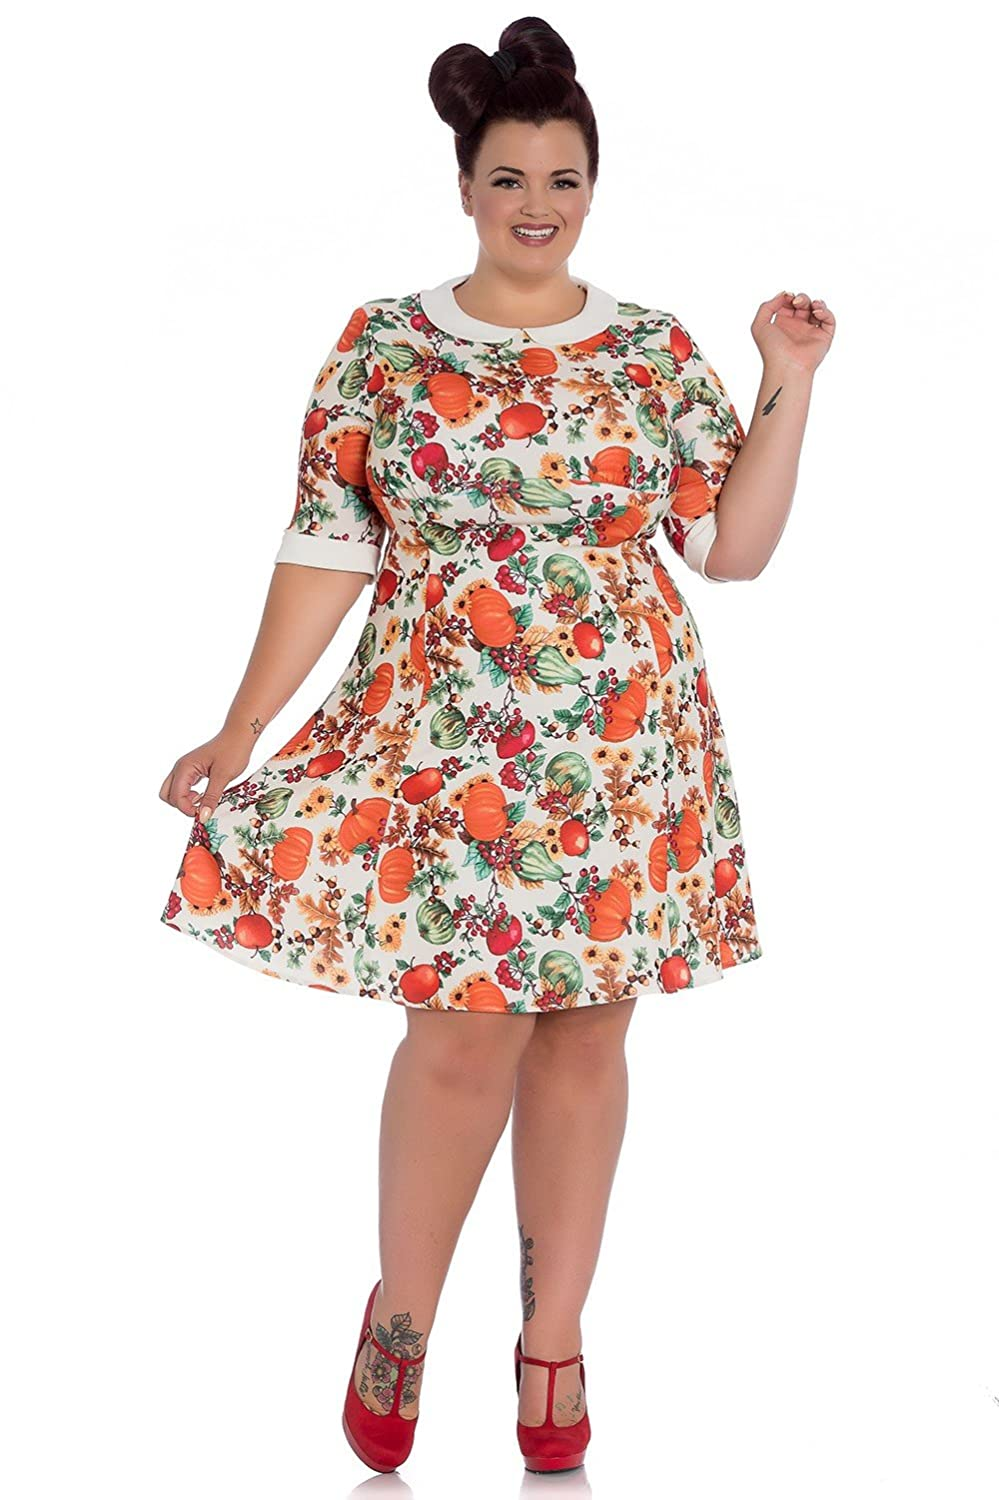 60s 70s Plus Size Dresses, Clothing, Costumes Hell Bunny 60s Retro Autumn Pumpkin Berries Mini Dress $36.99 AT vintagedancer.com